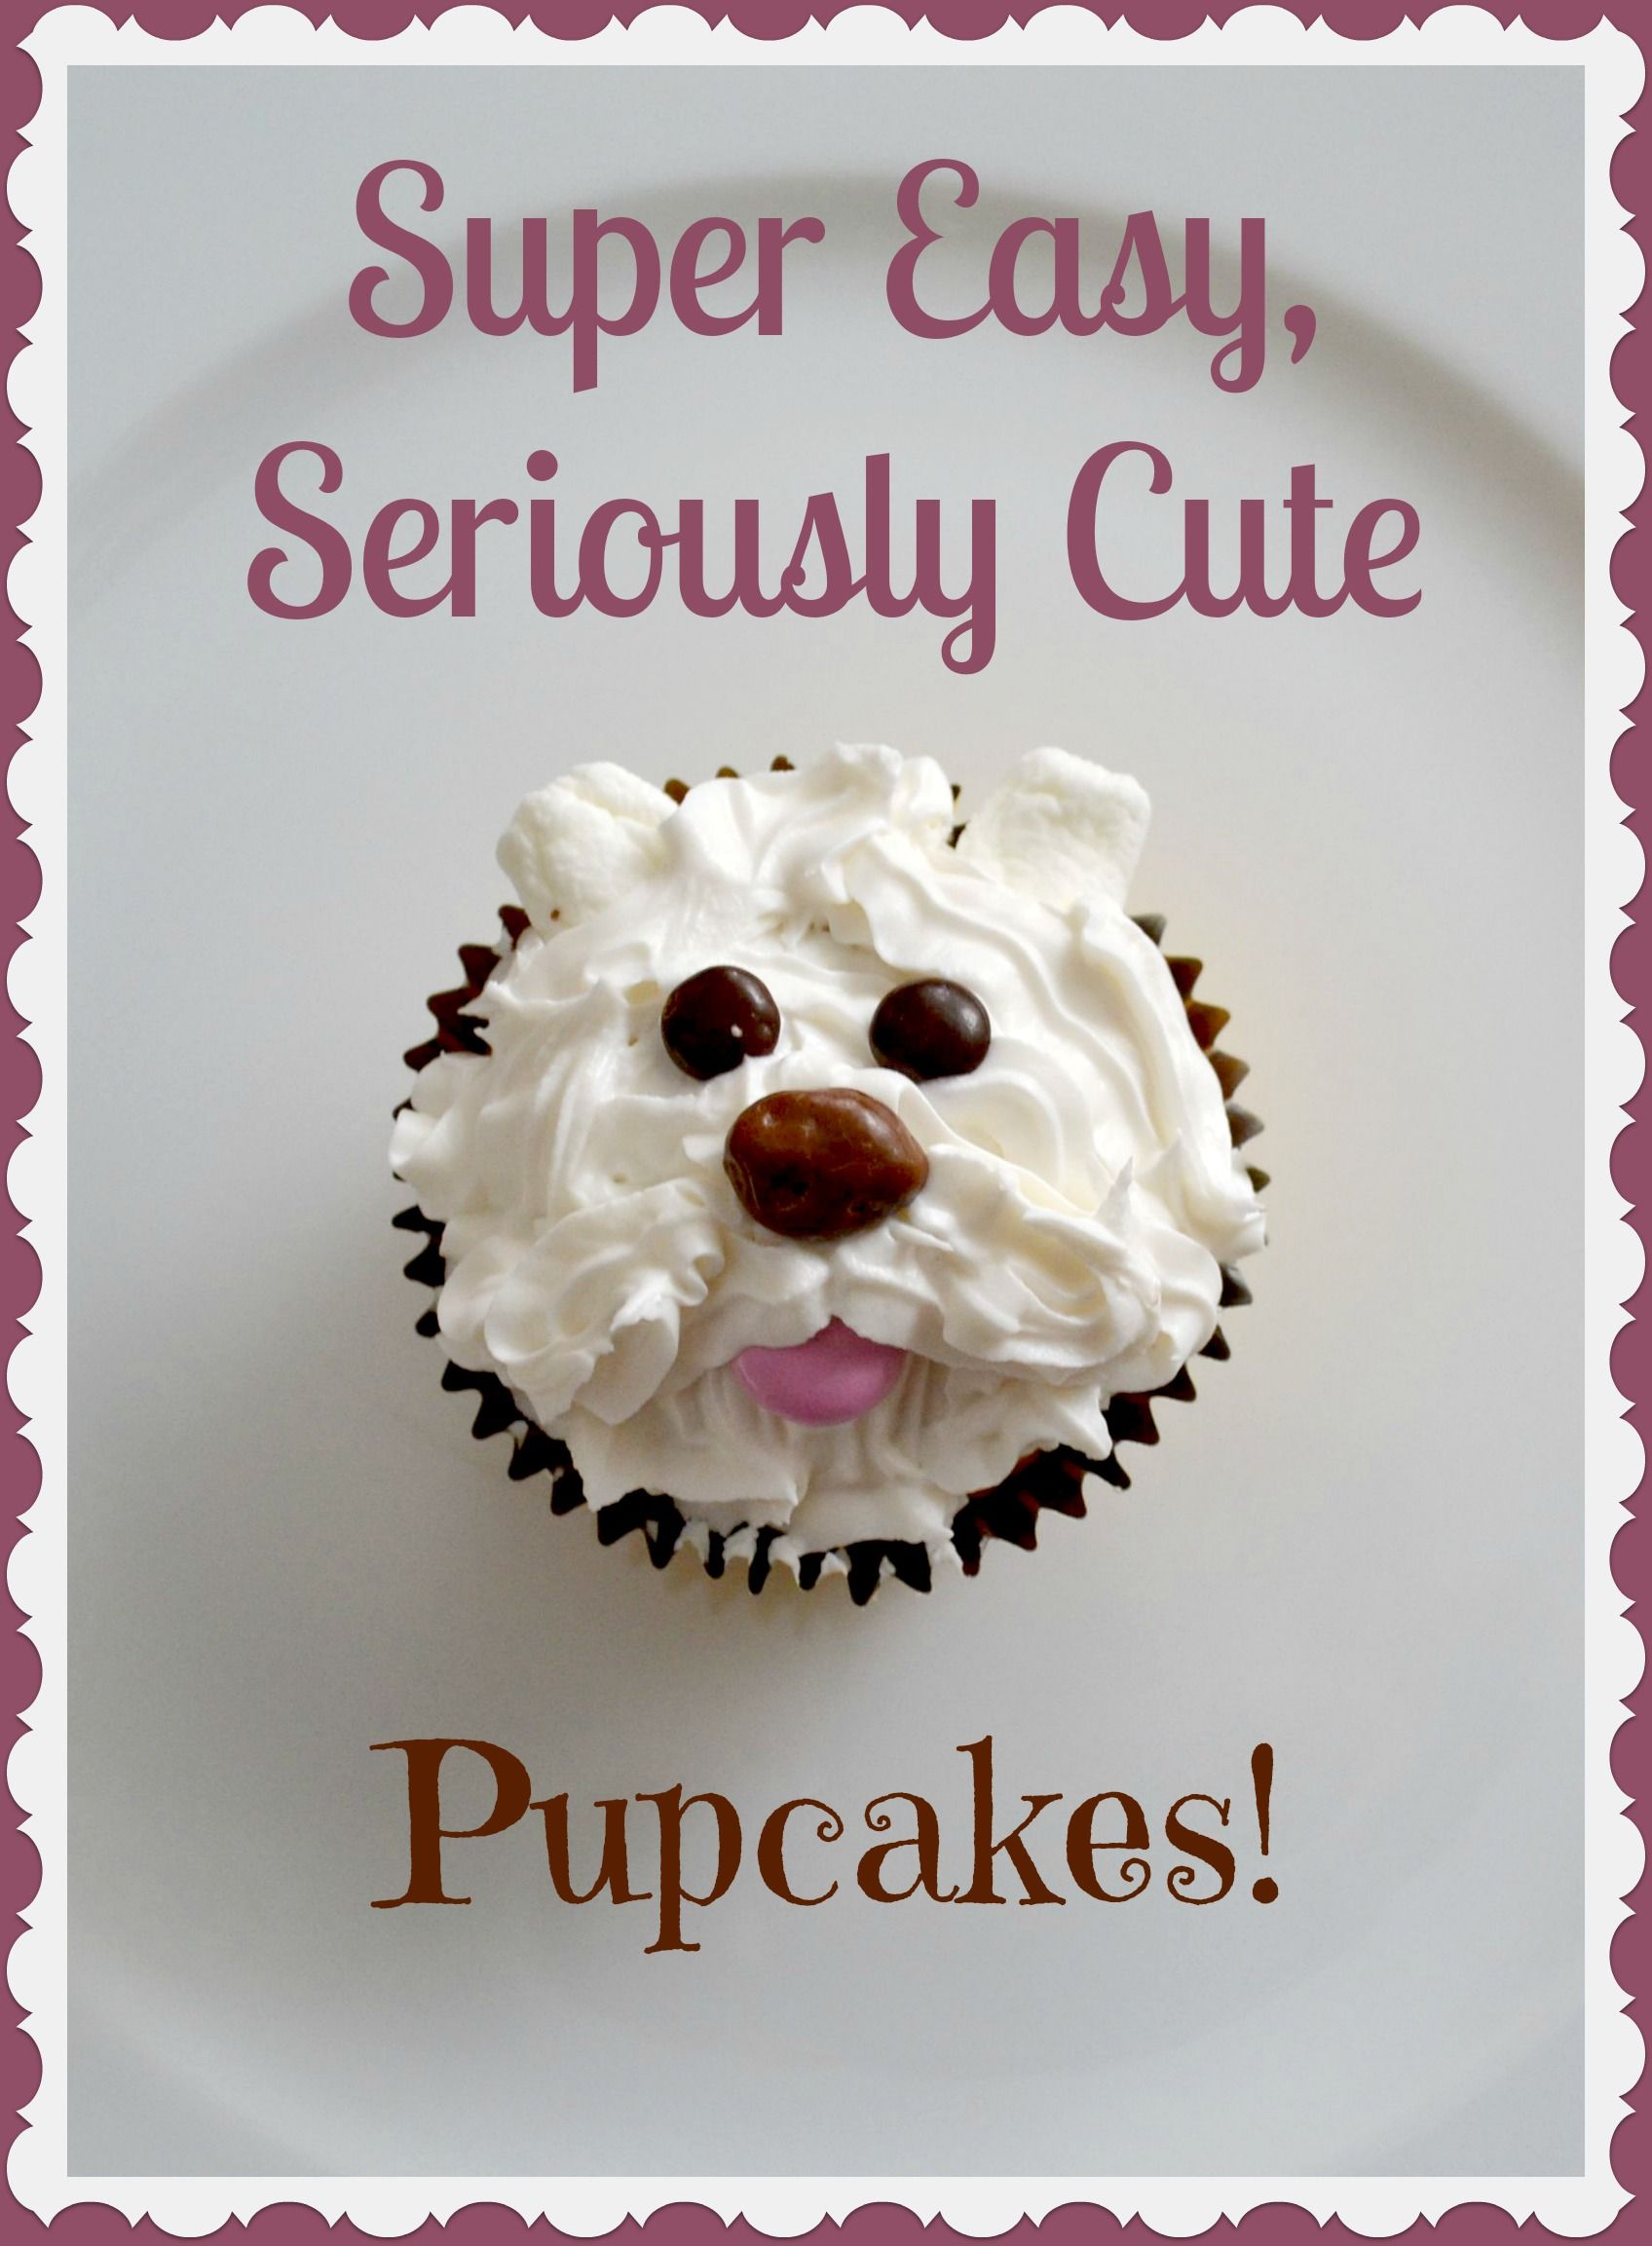 Super Easy Seriously Cute Dog Themed Cupcakes